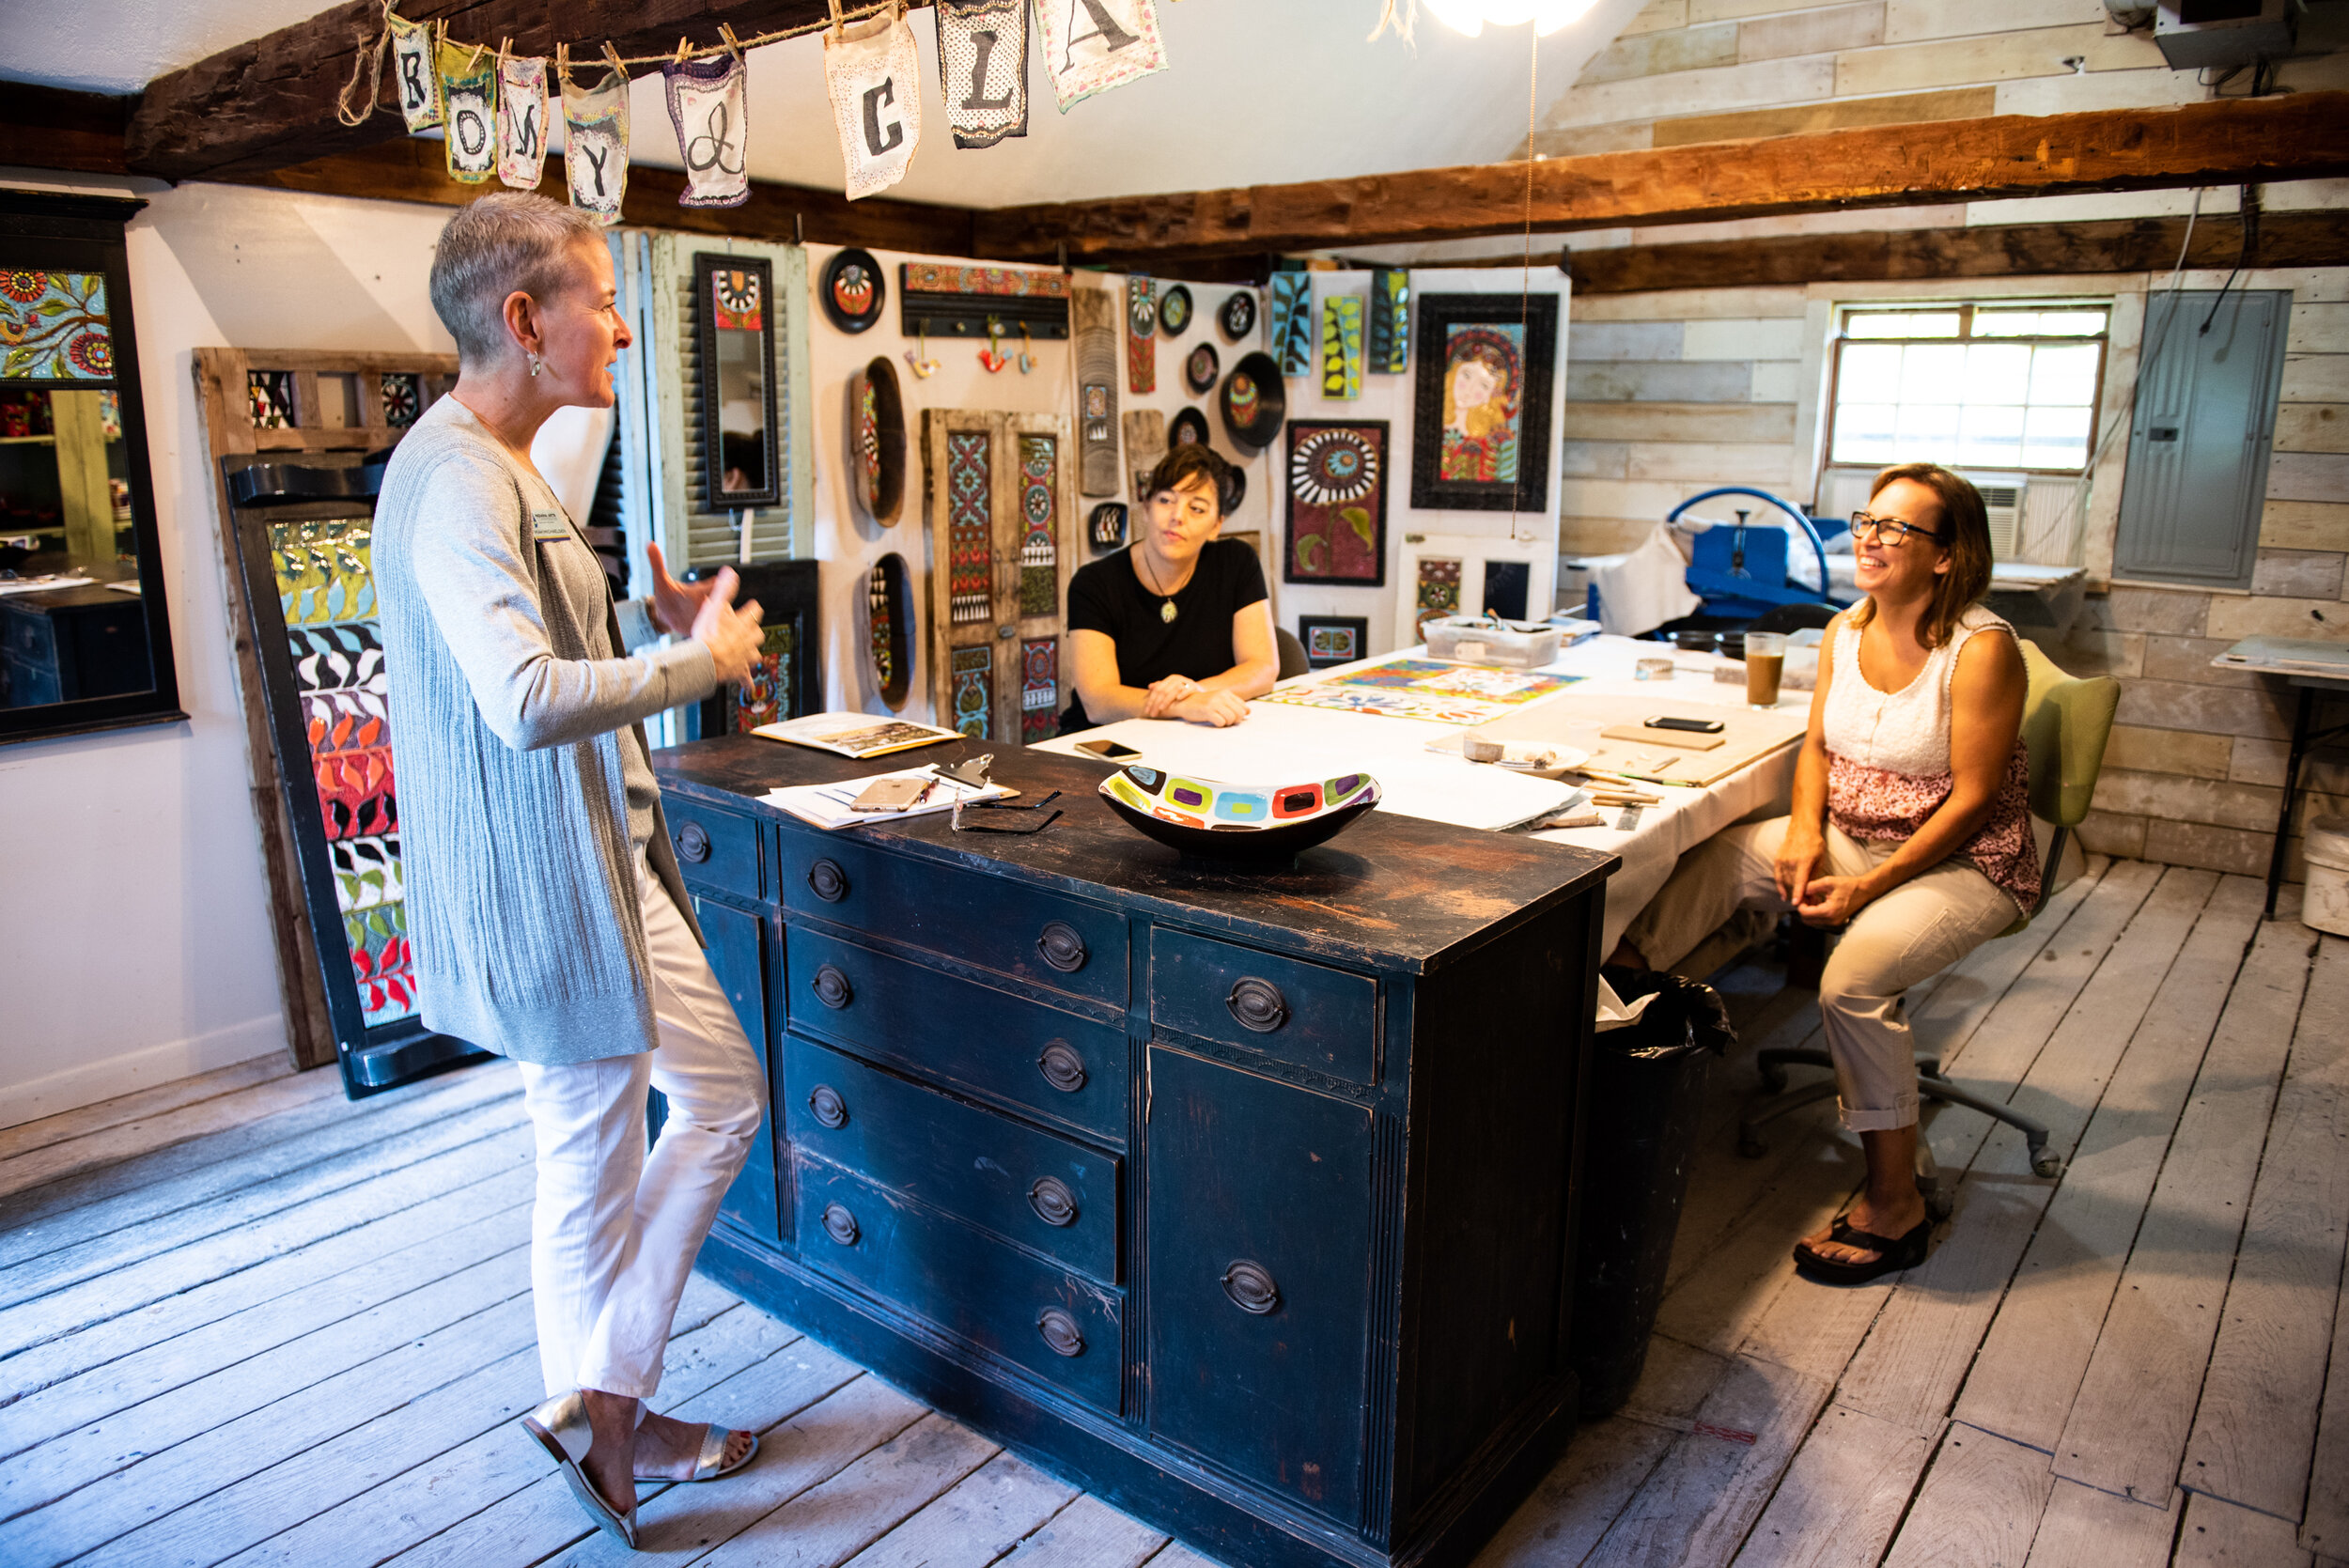 Indiana Arts Commission's Deputy Director of Operations, Miah Michaelson visits with Romy and Clare in their Japer, Indiana studio.